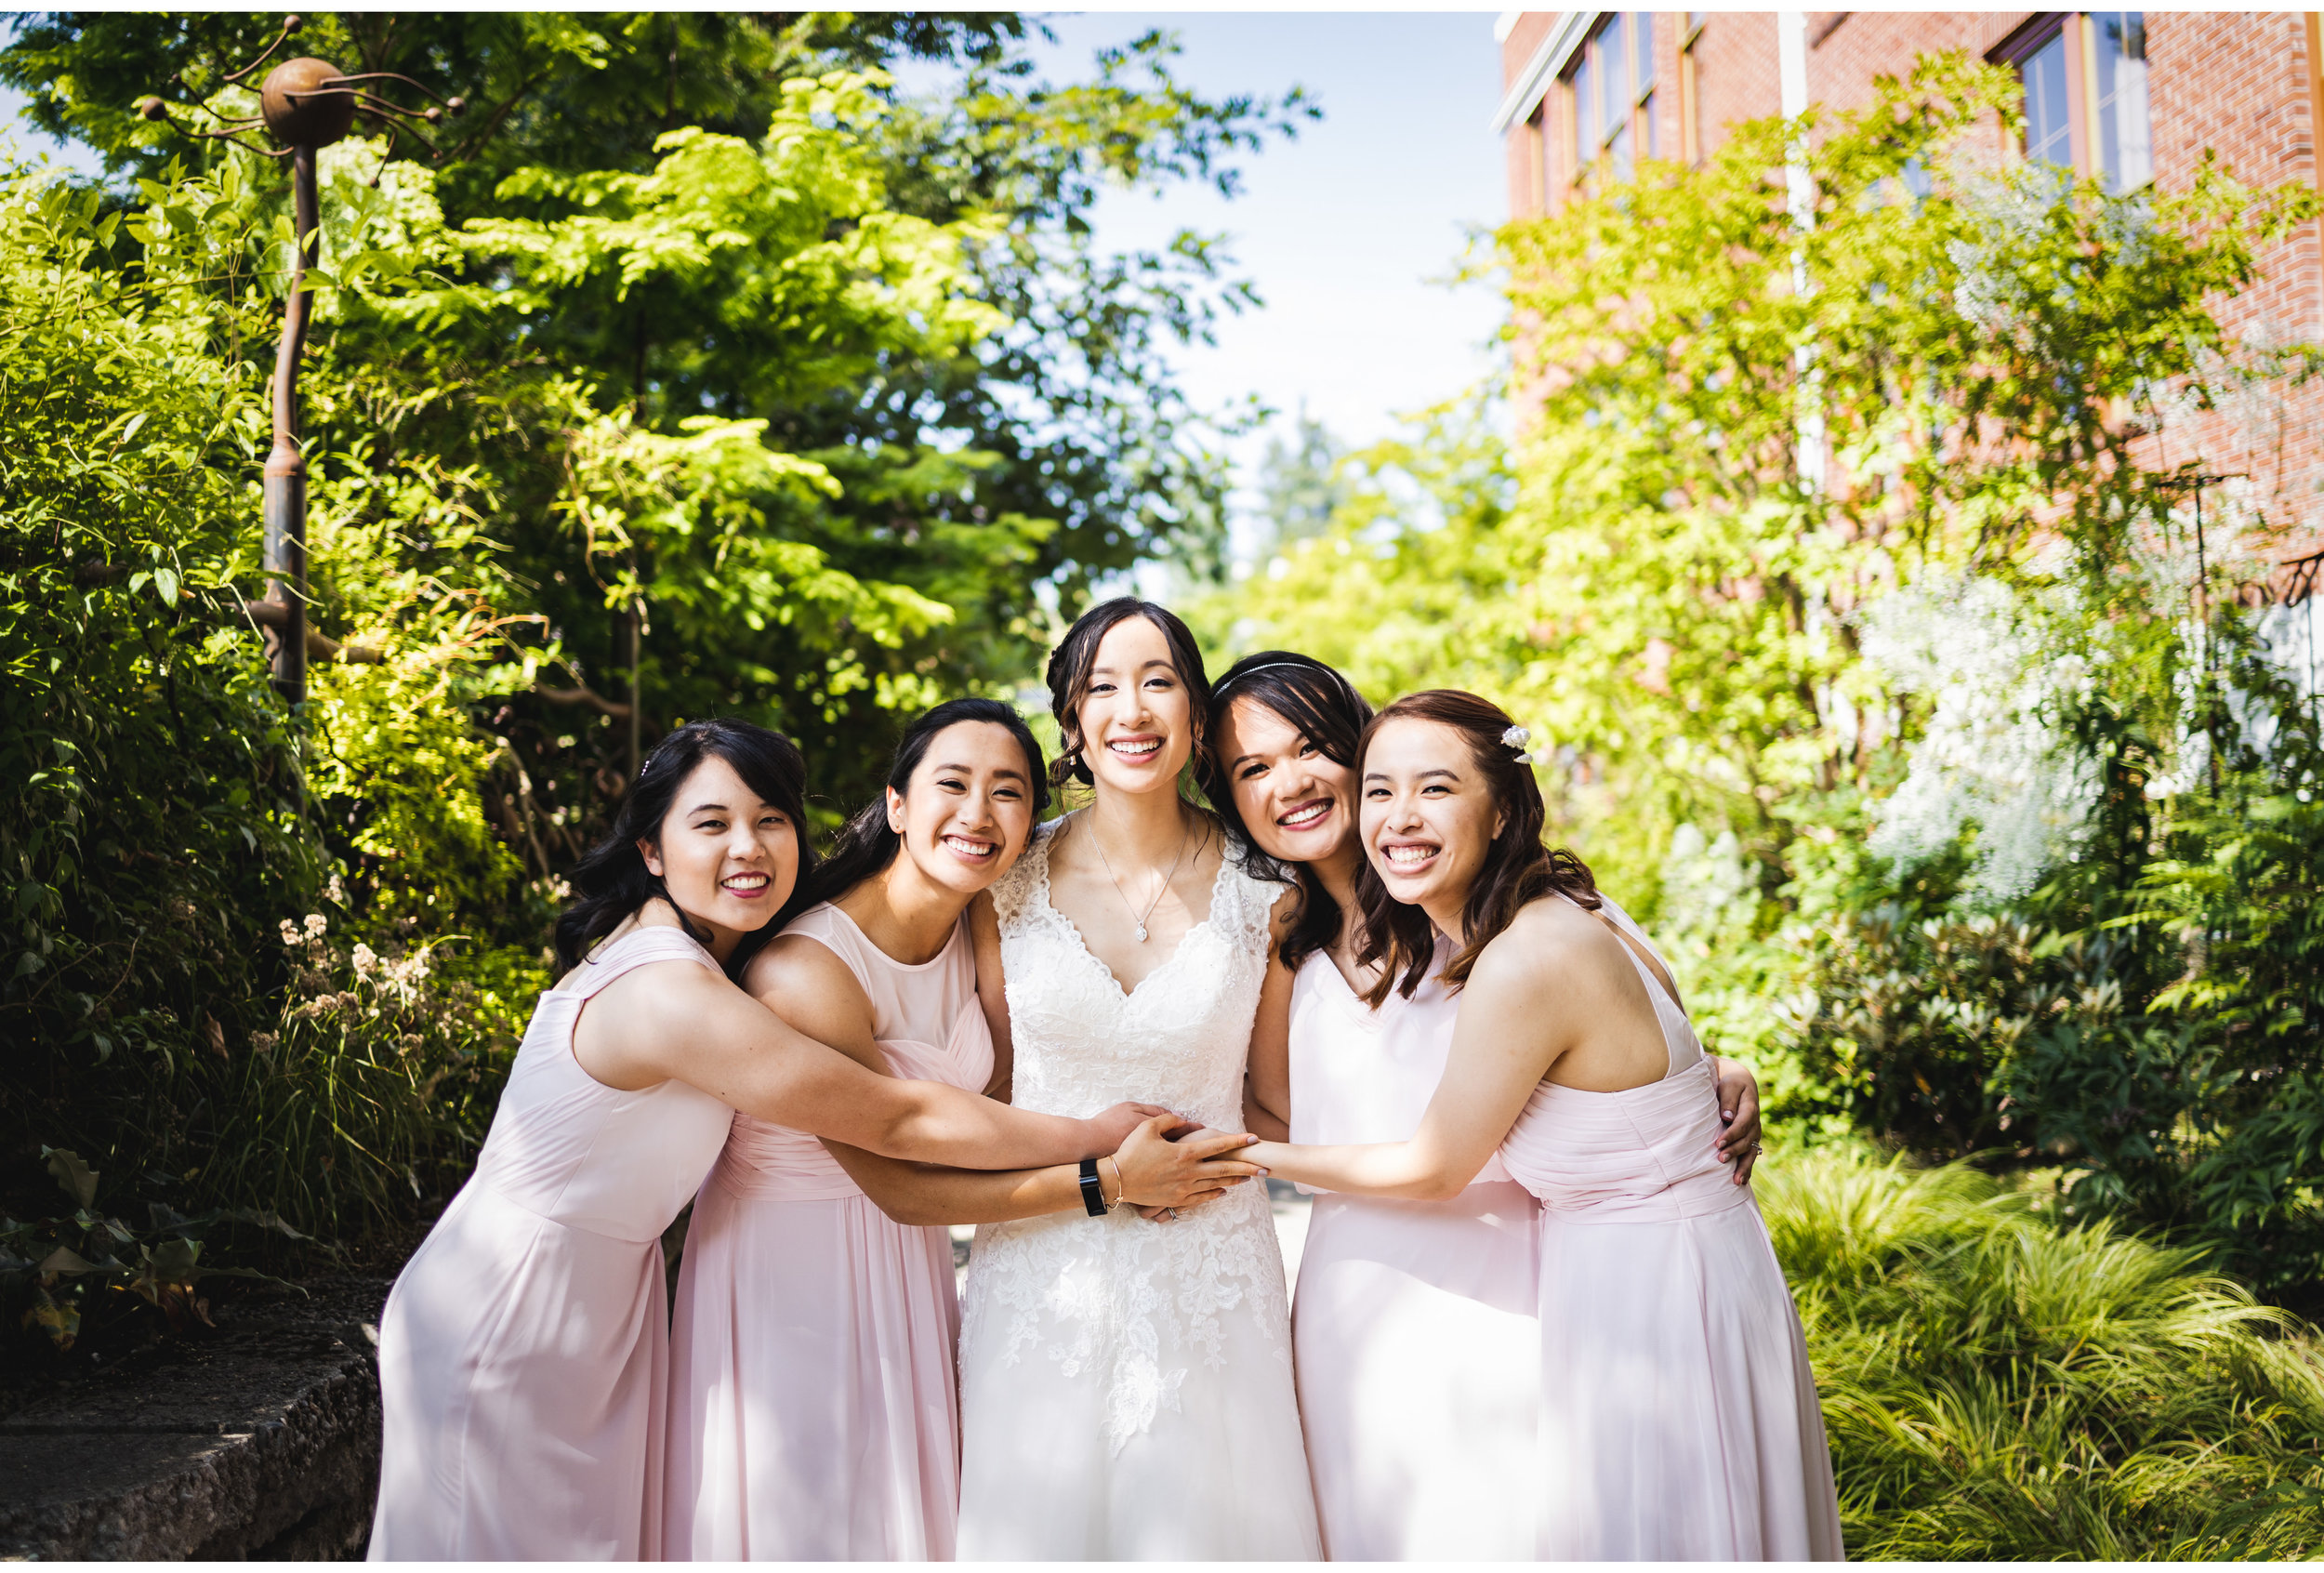 Bridesmaids Wedding Hug.jpg